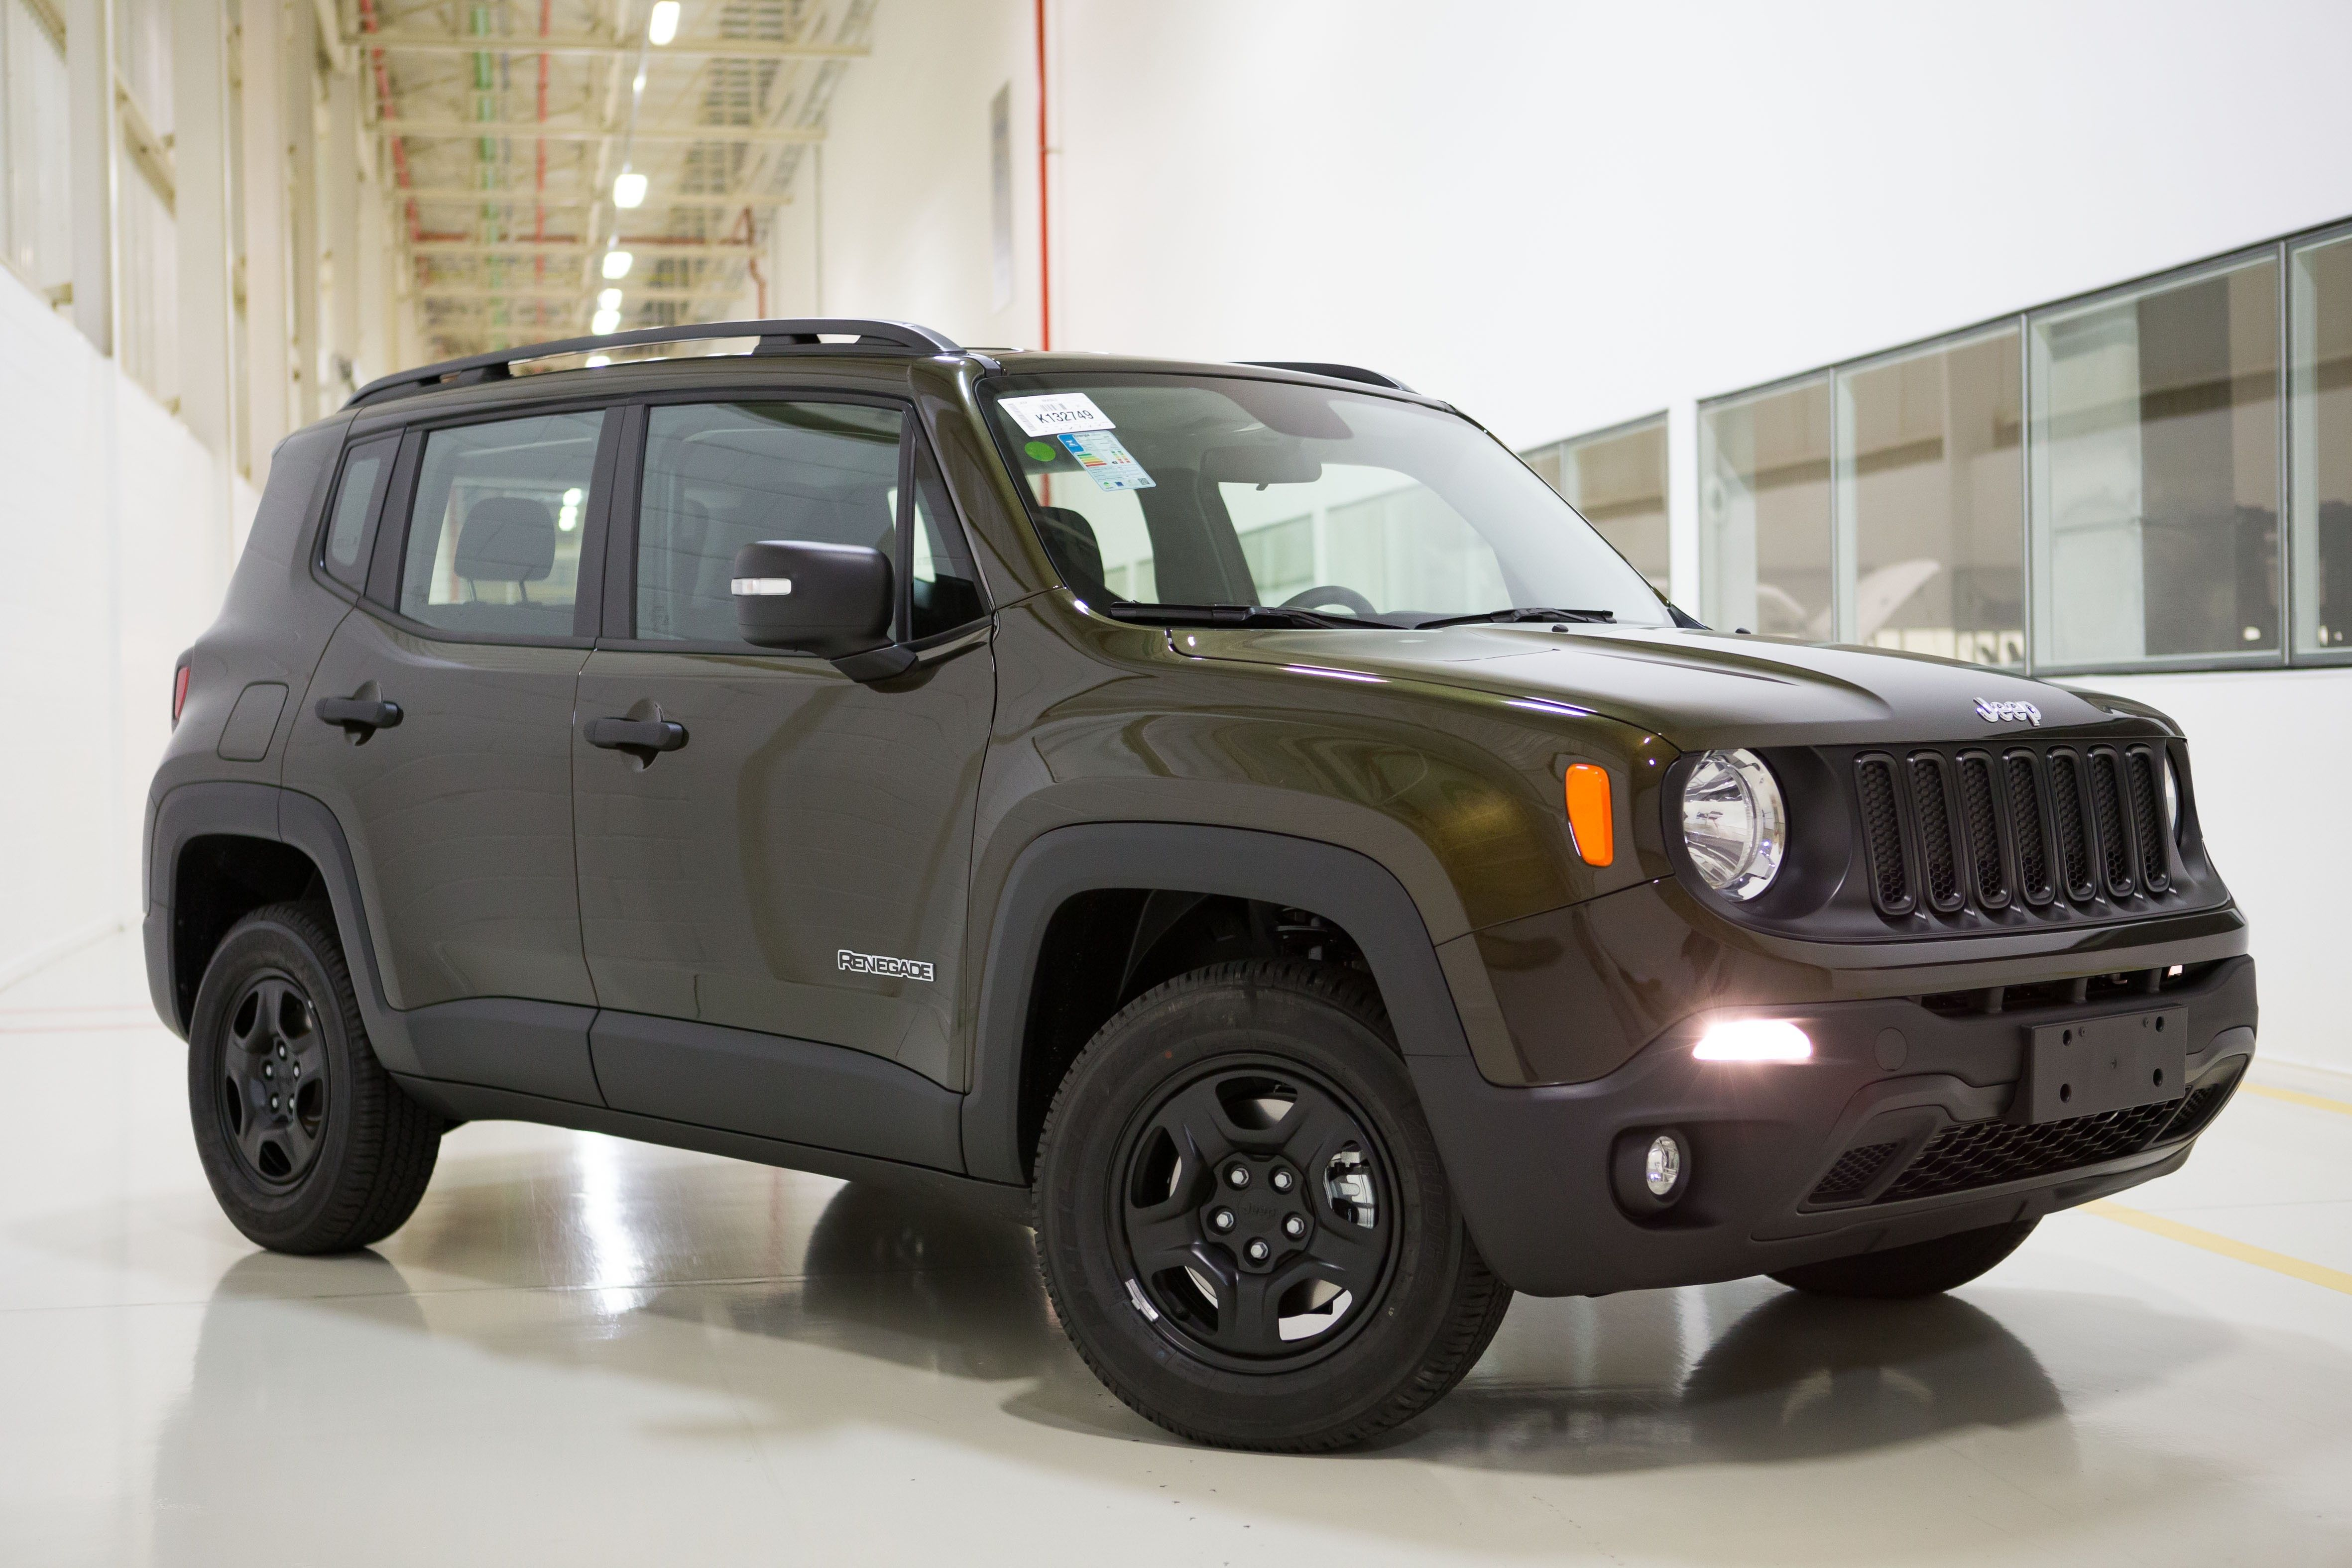 2015 jeep renegade black a nice car looks exactly like my younger sister s car favorite cars pinterest jeep renegade jeeps and cars